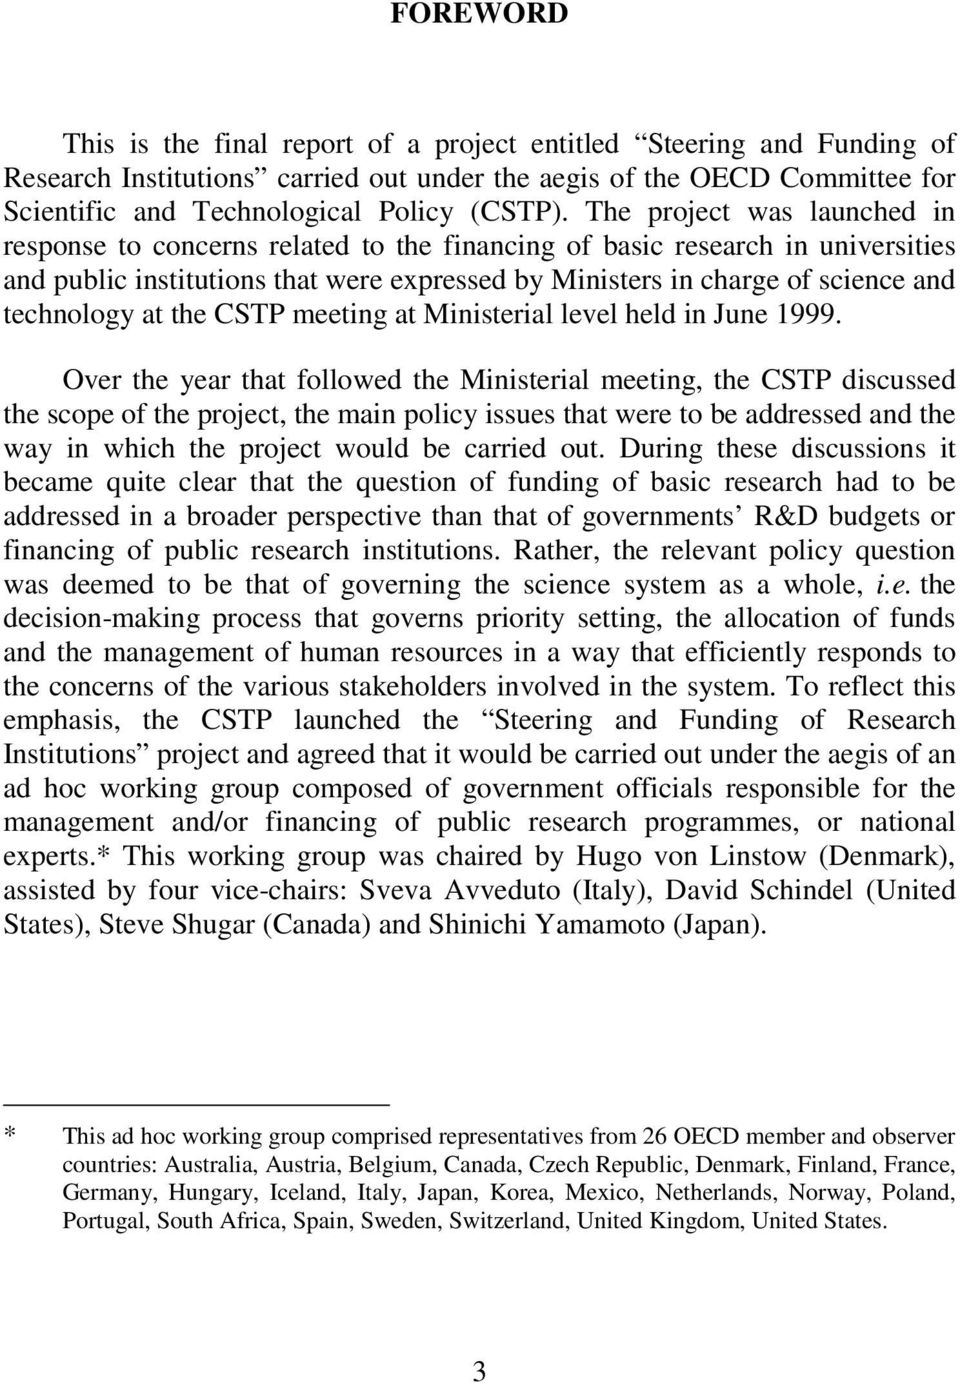 at the CSTP meeting at Ministerial level held in June 1999.